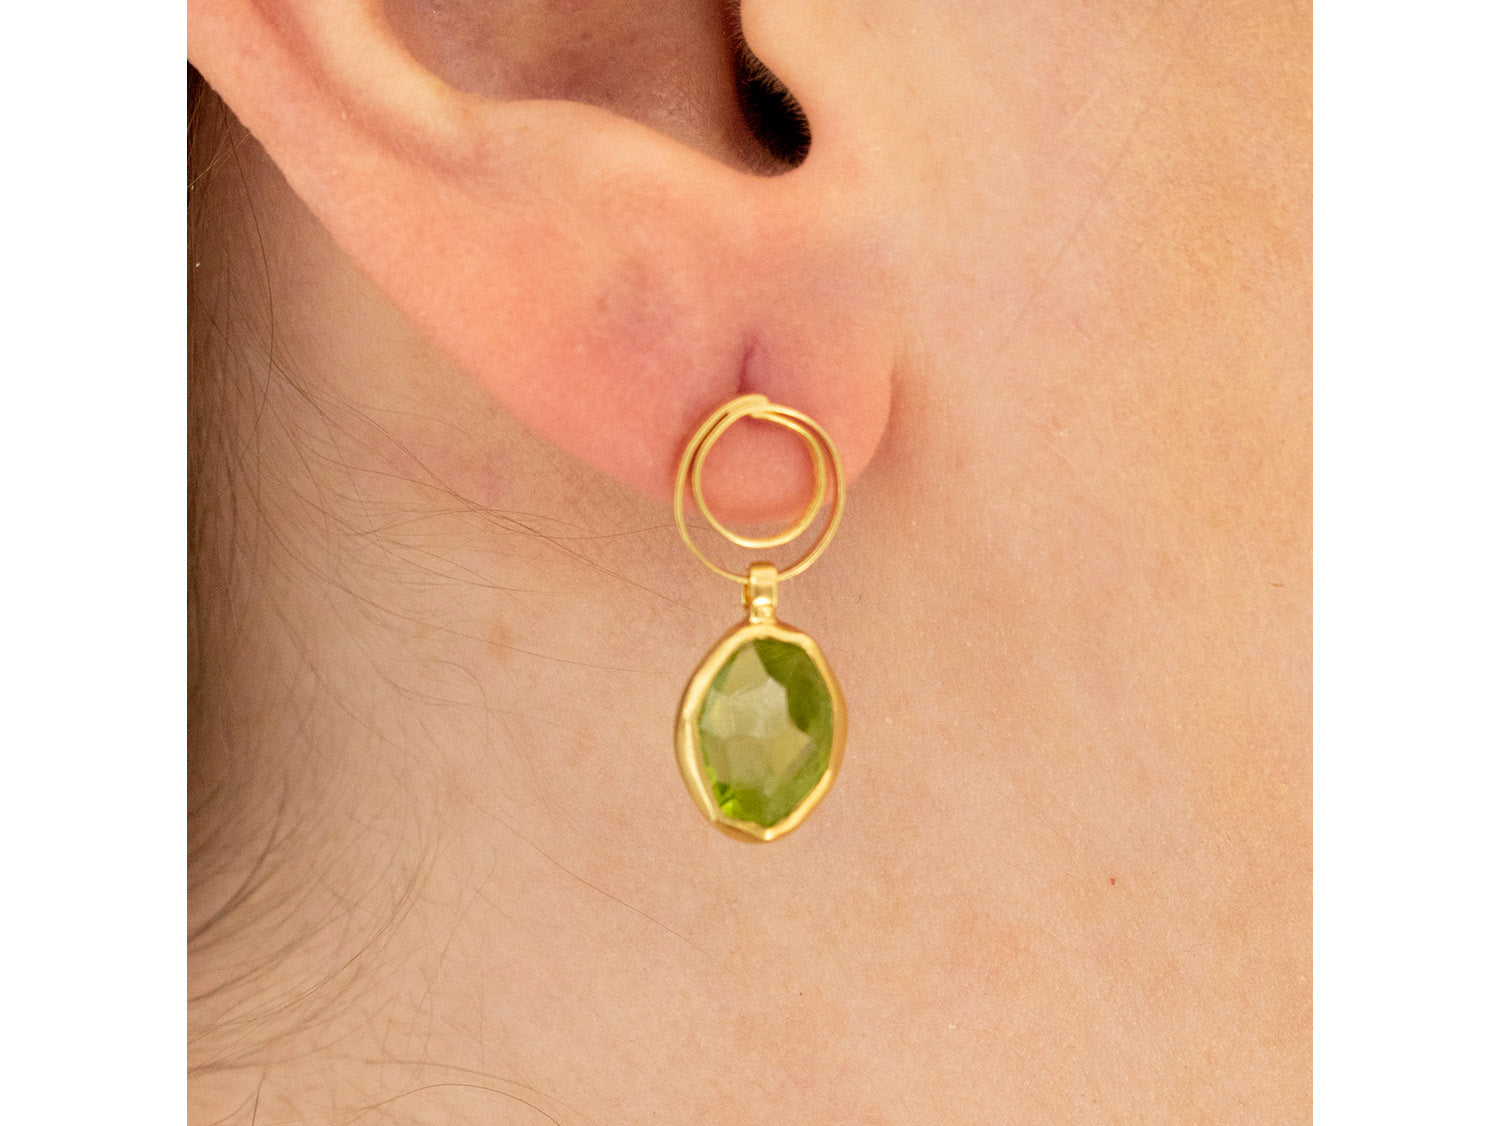 18K Yellow Gold and Peridot Earrings in Washington DC